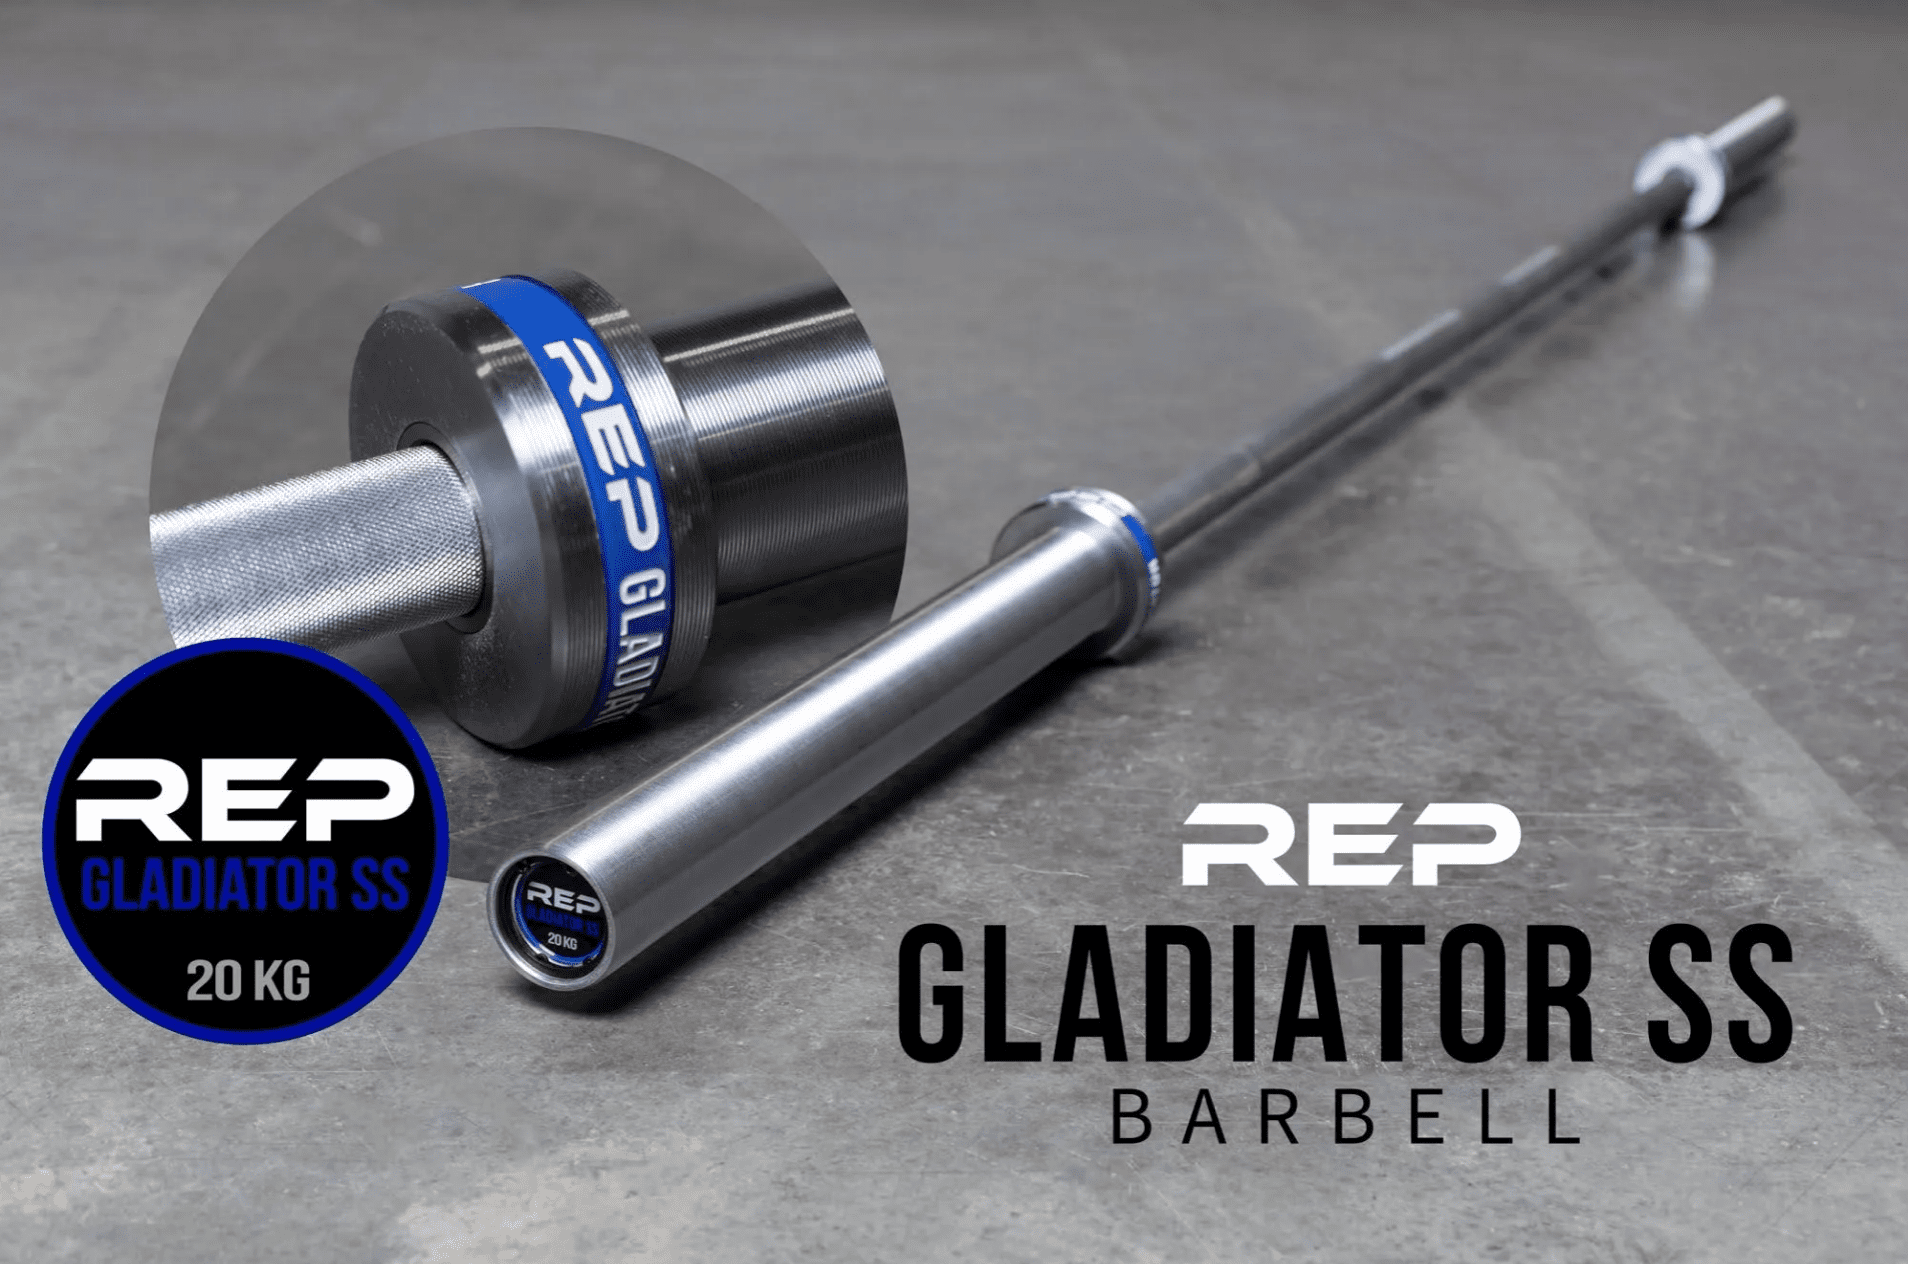 REP Stainless Steel Gladiator WL Barbell